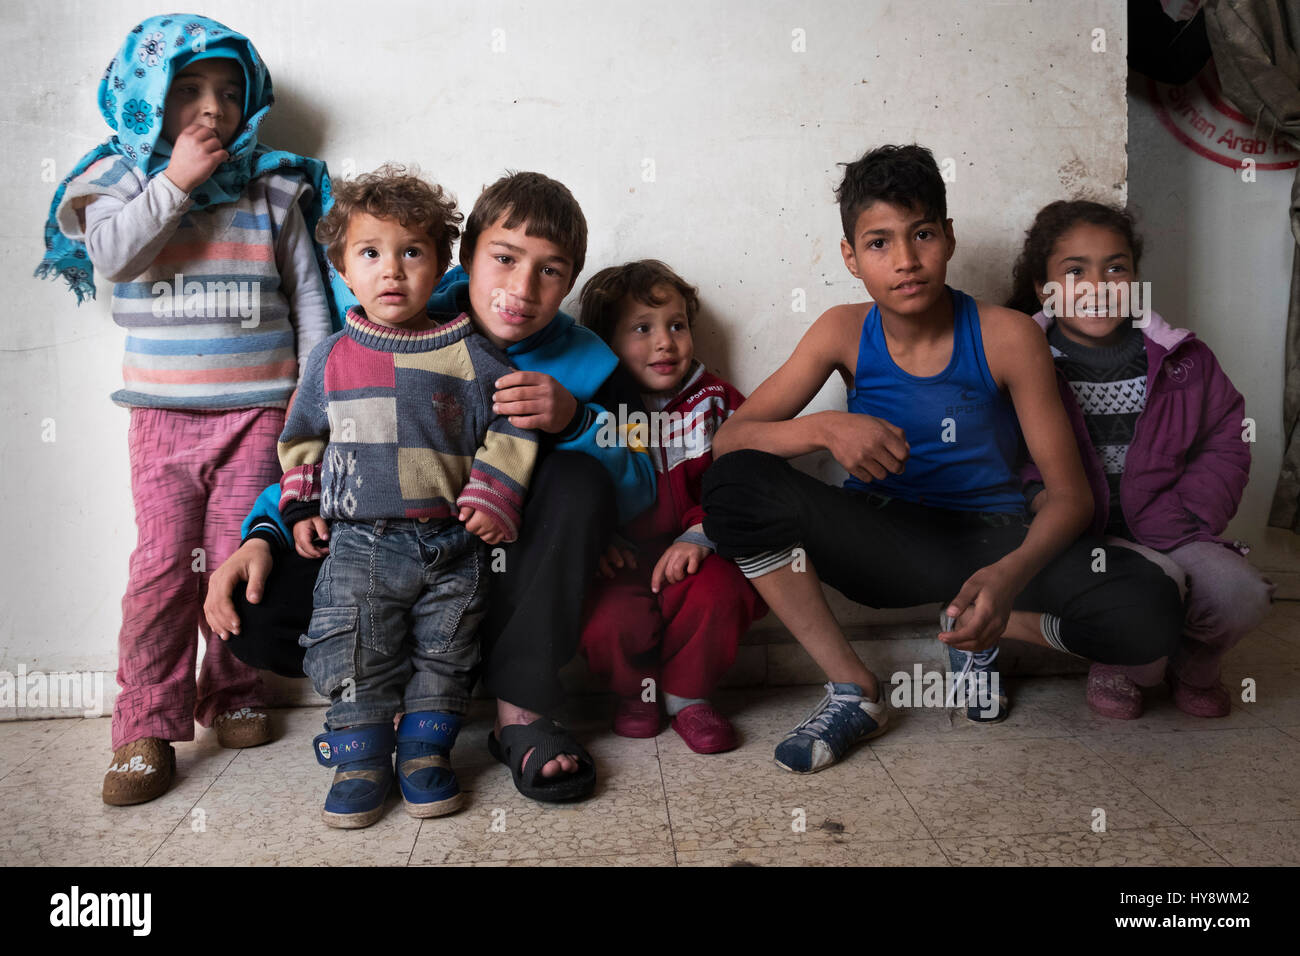 Children living in distressed district Baba Amr in Homs, Syria in early 2017 - Stock Image